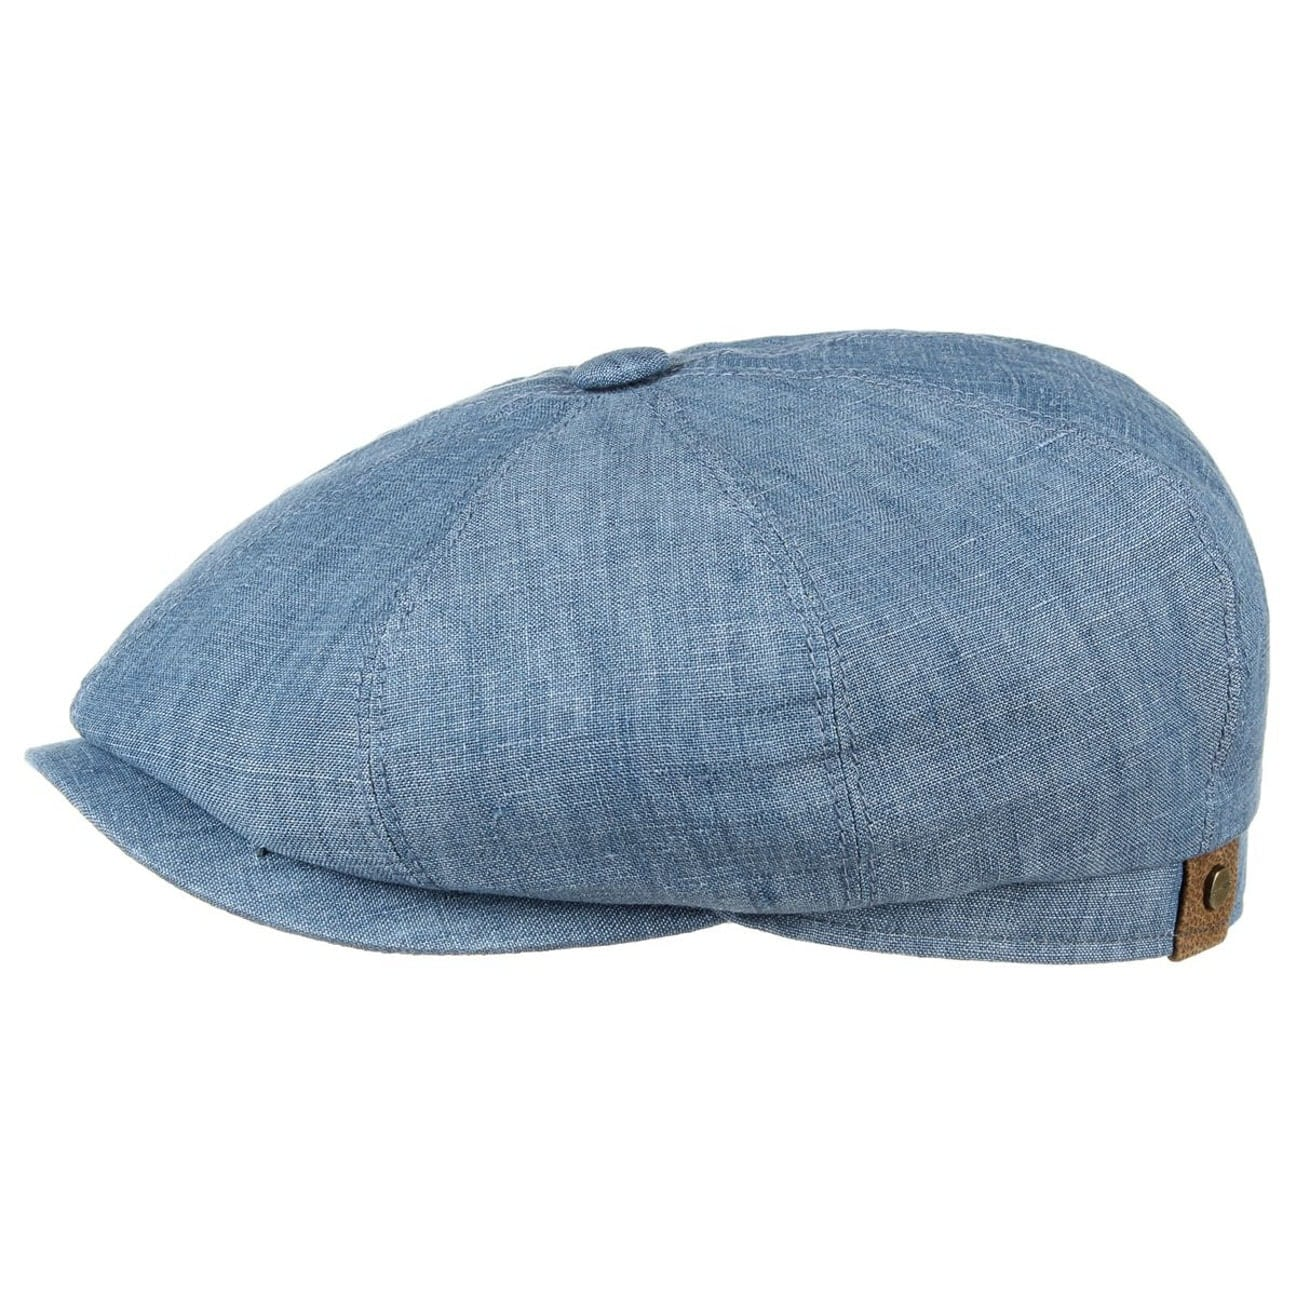 fcb8bb84 ... Hatteras Linen Newsboy Cap by Stetson - light blue 1 ...